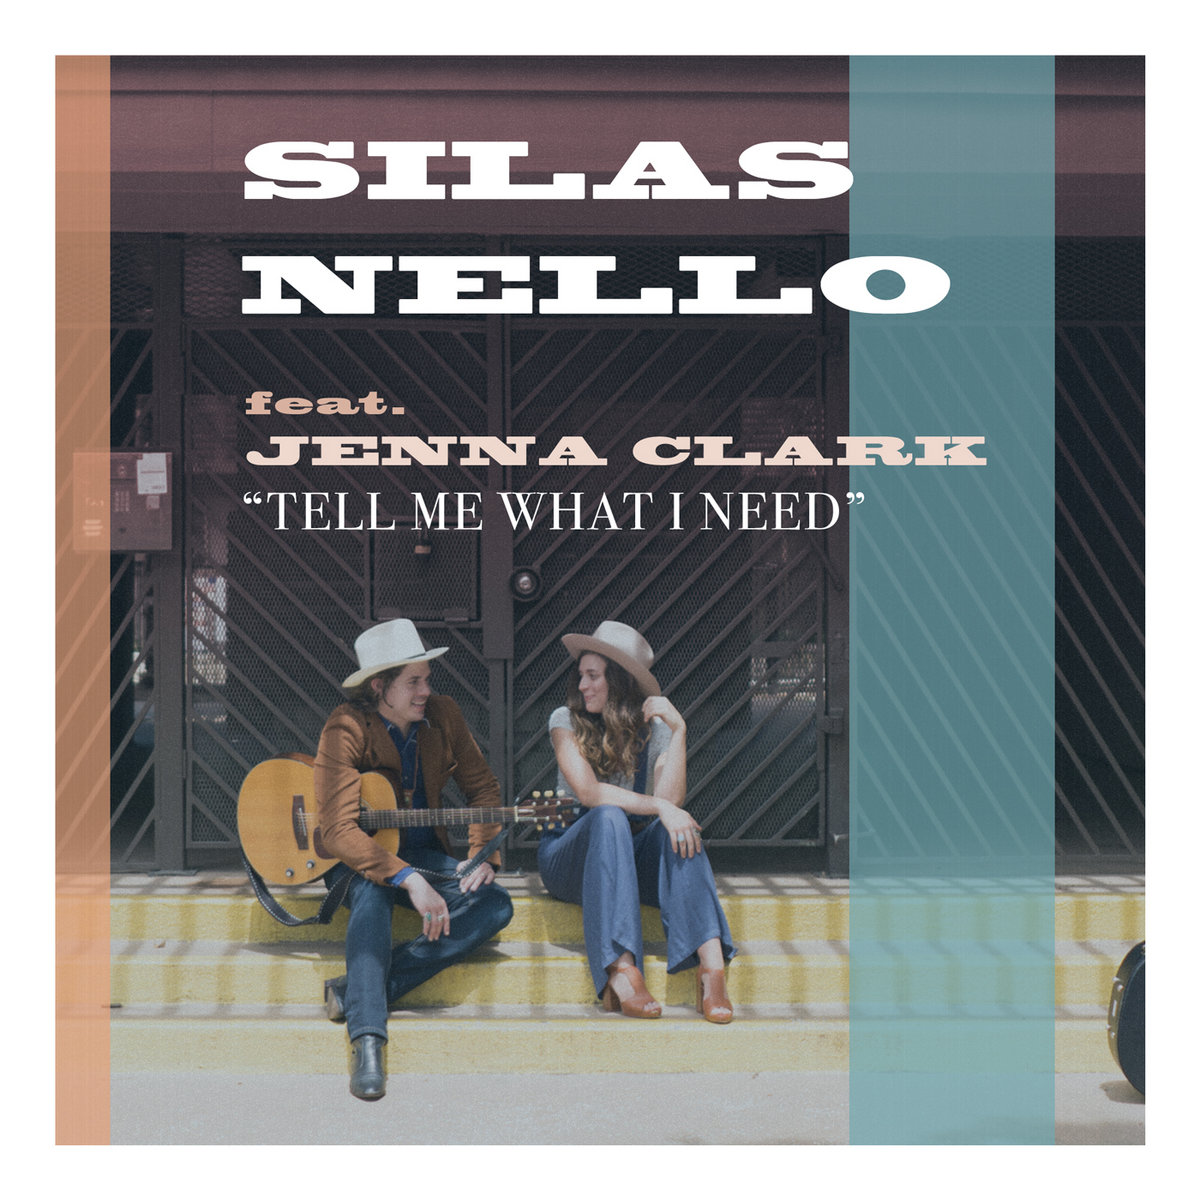 Tell Me What I Need (feat. Jenna Clark) by Silas Nello